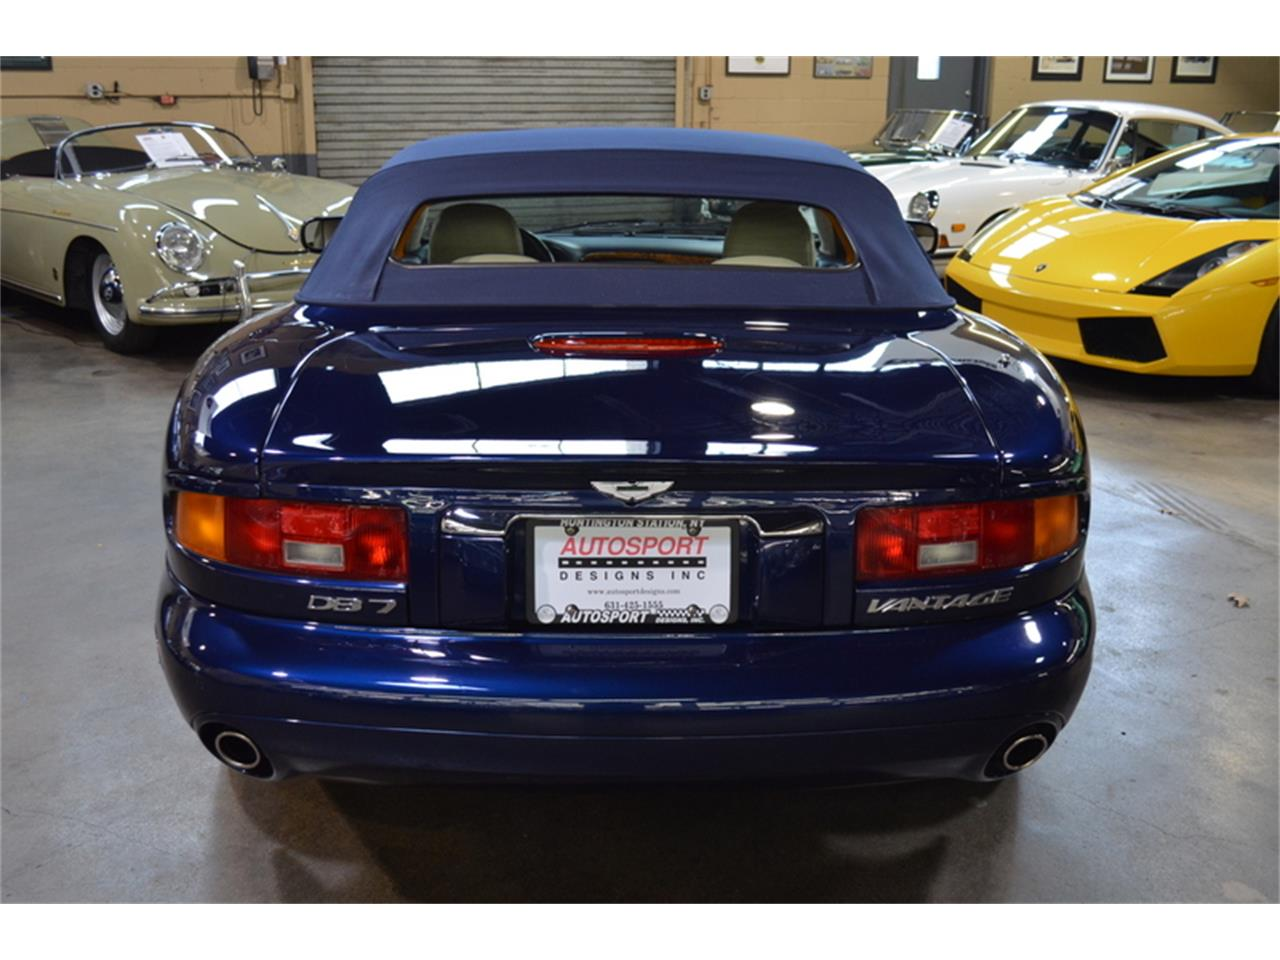 Large Picture of '02 Aston Martin DB7 Vantage Volante located in New York - $39,500.00 - MBES